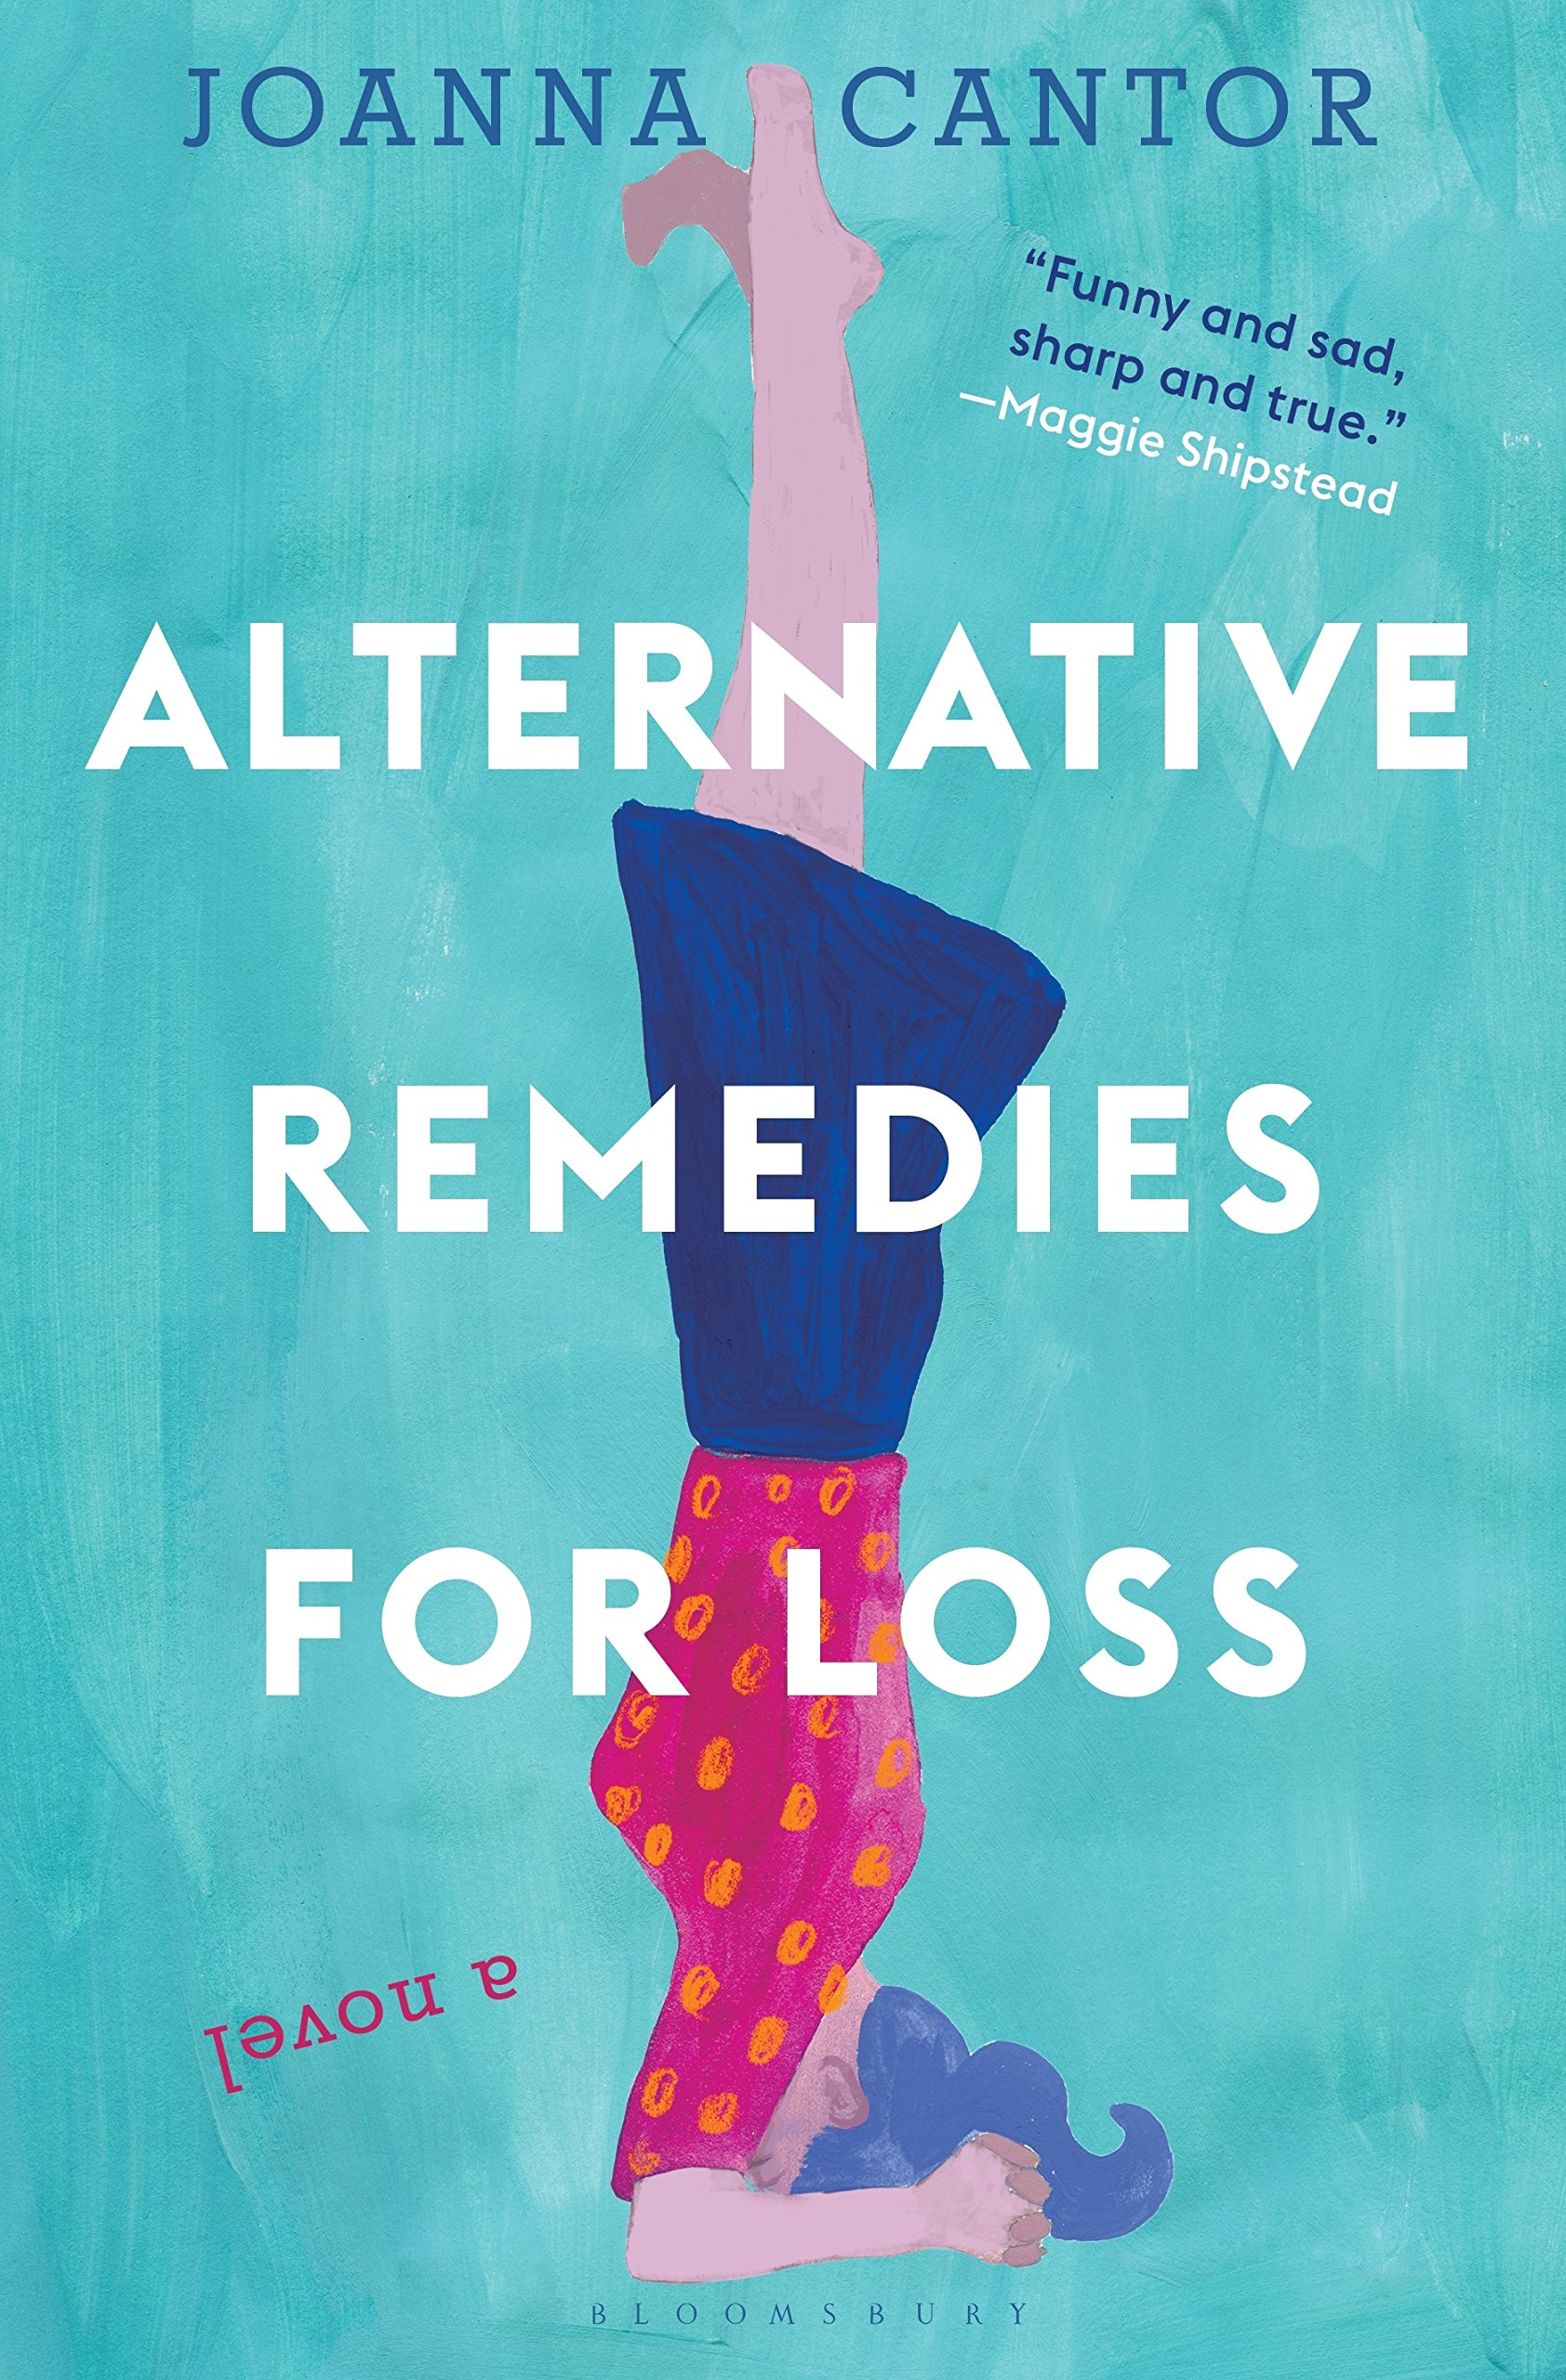 Alternative Remedies for Loss